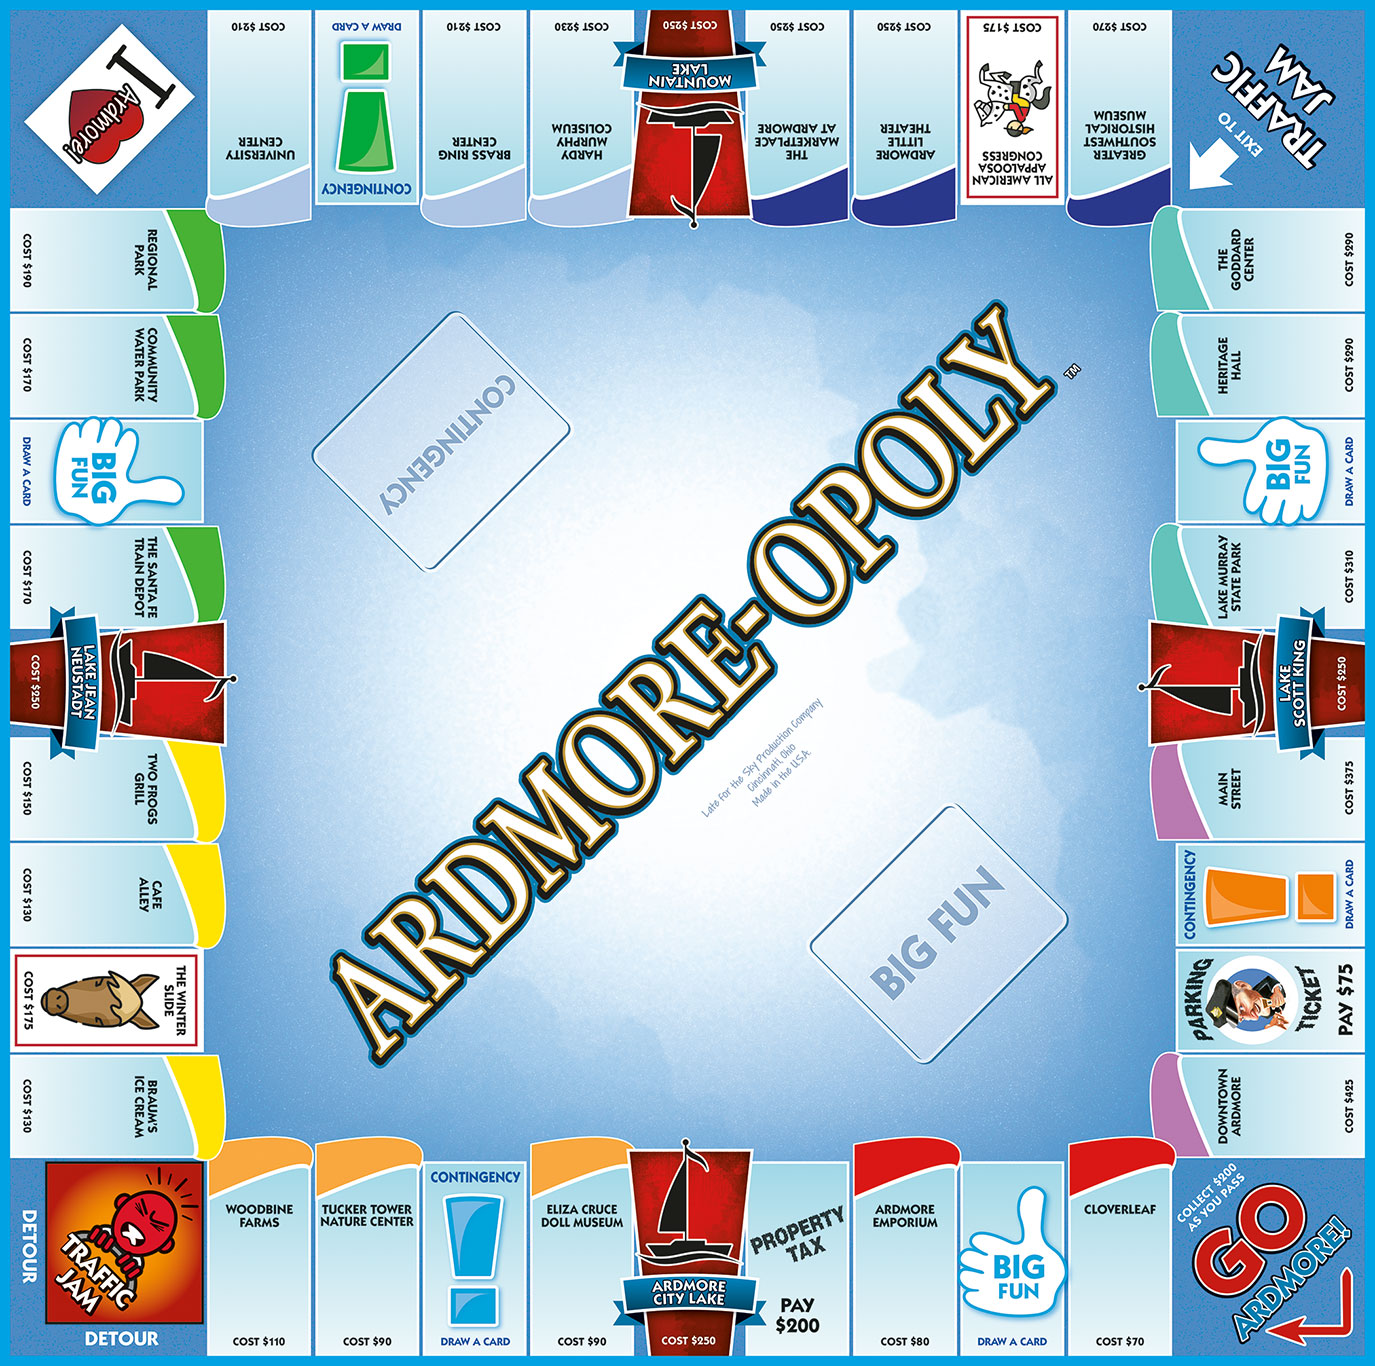 ARDMORE-OPOLY Board Game